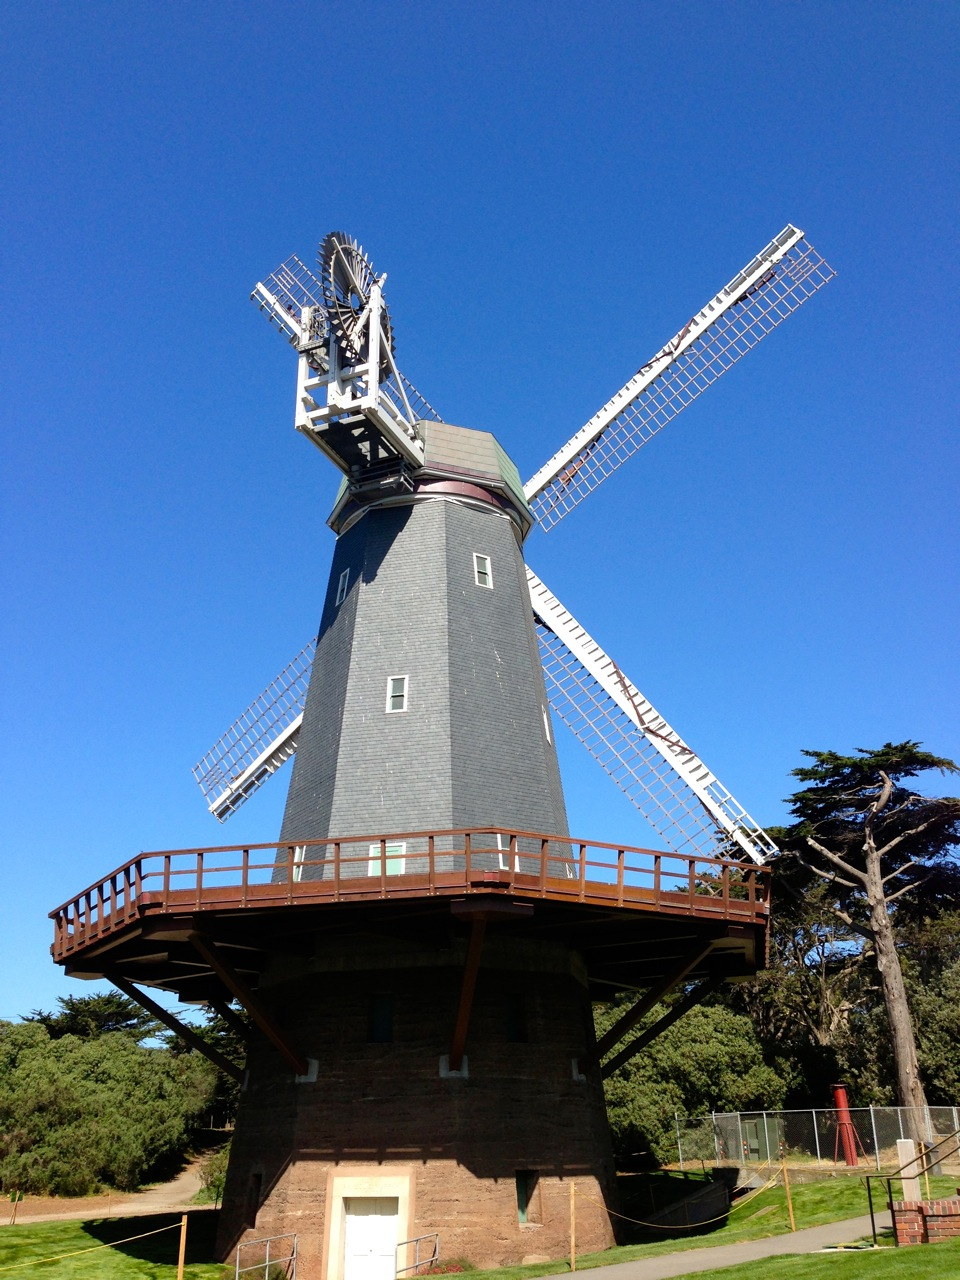 Windmill in Golden Gate Park